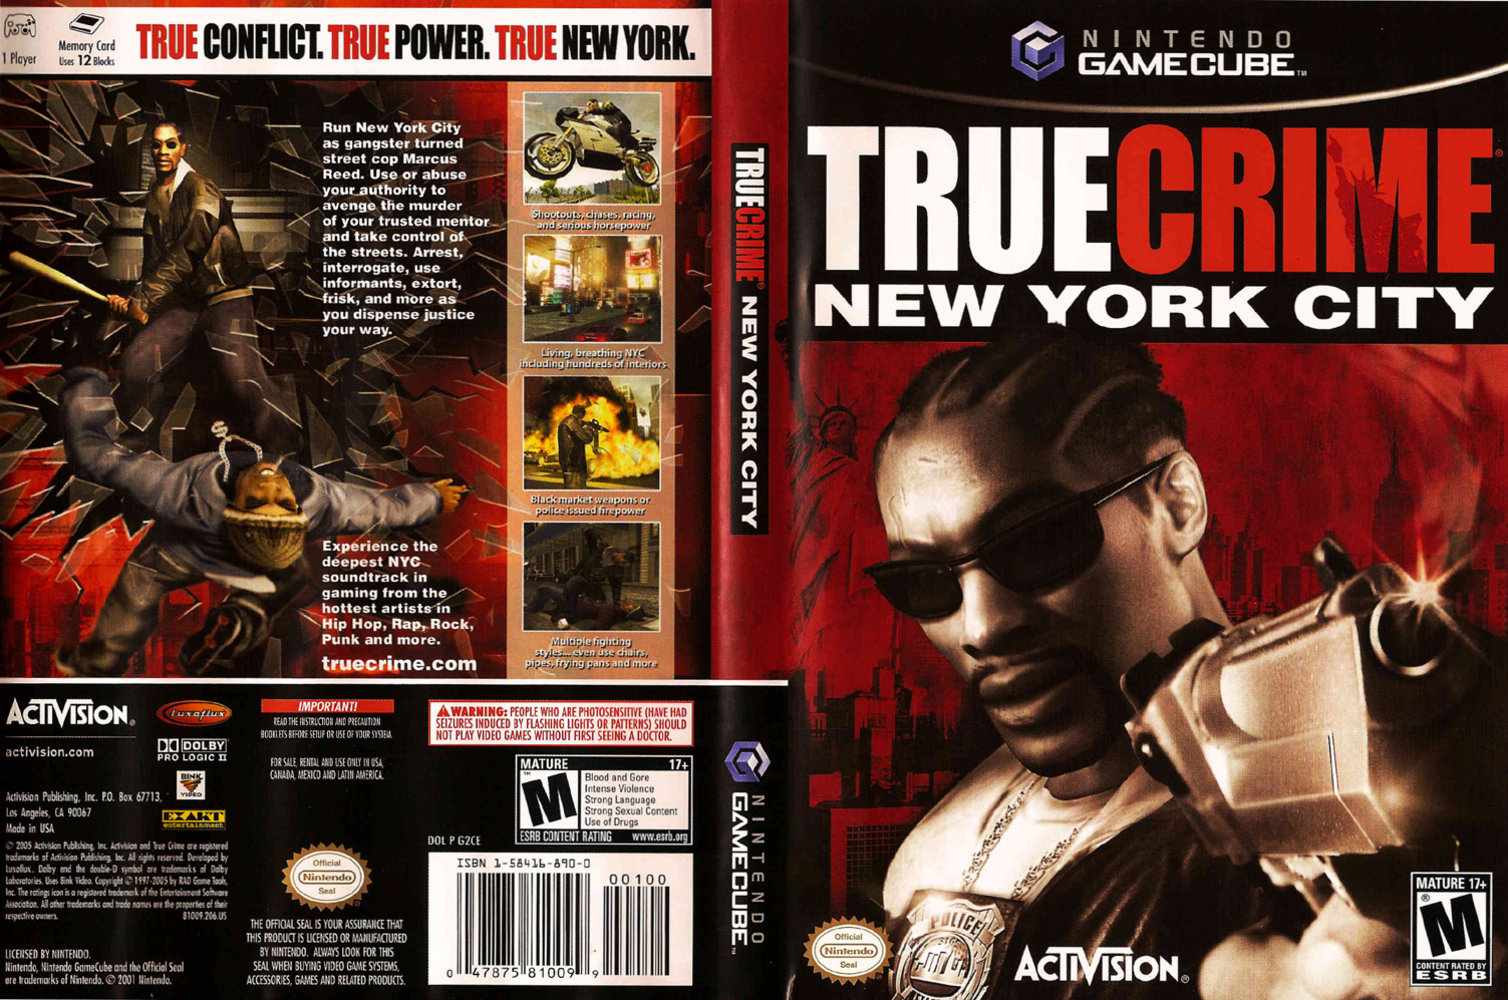 True crime new york city cover - click for full size image